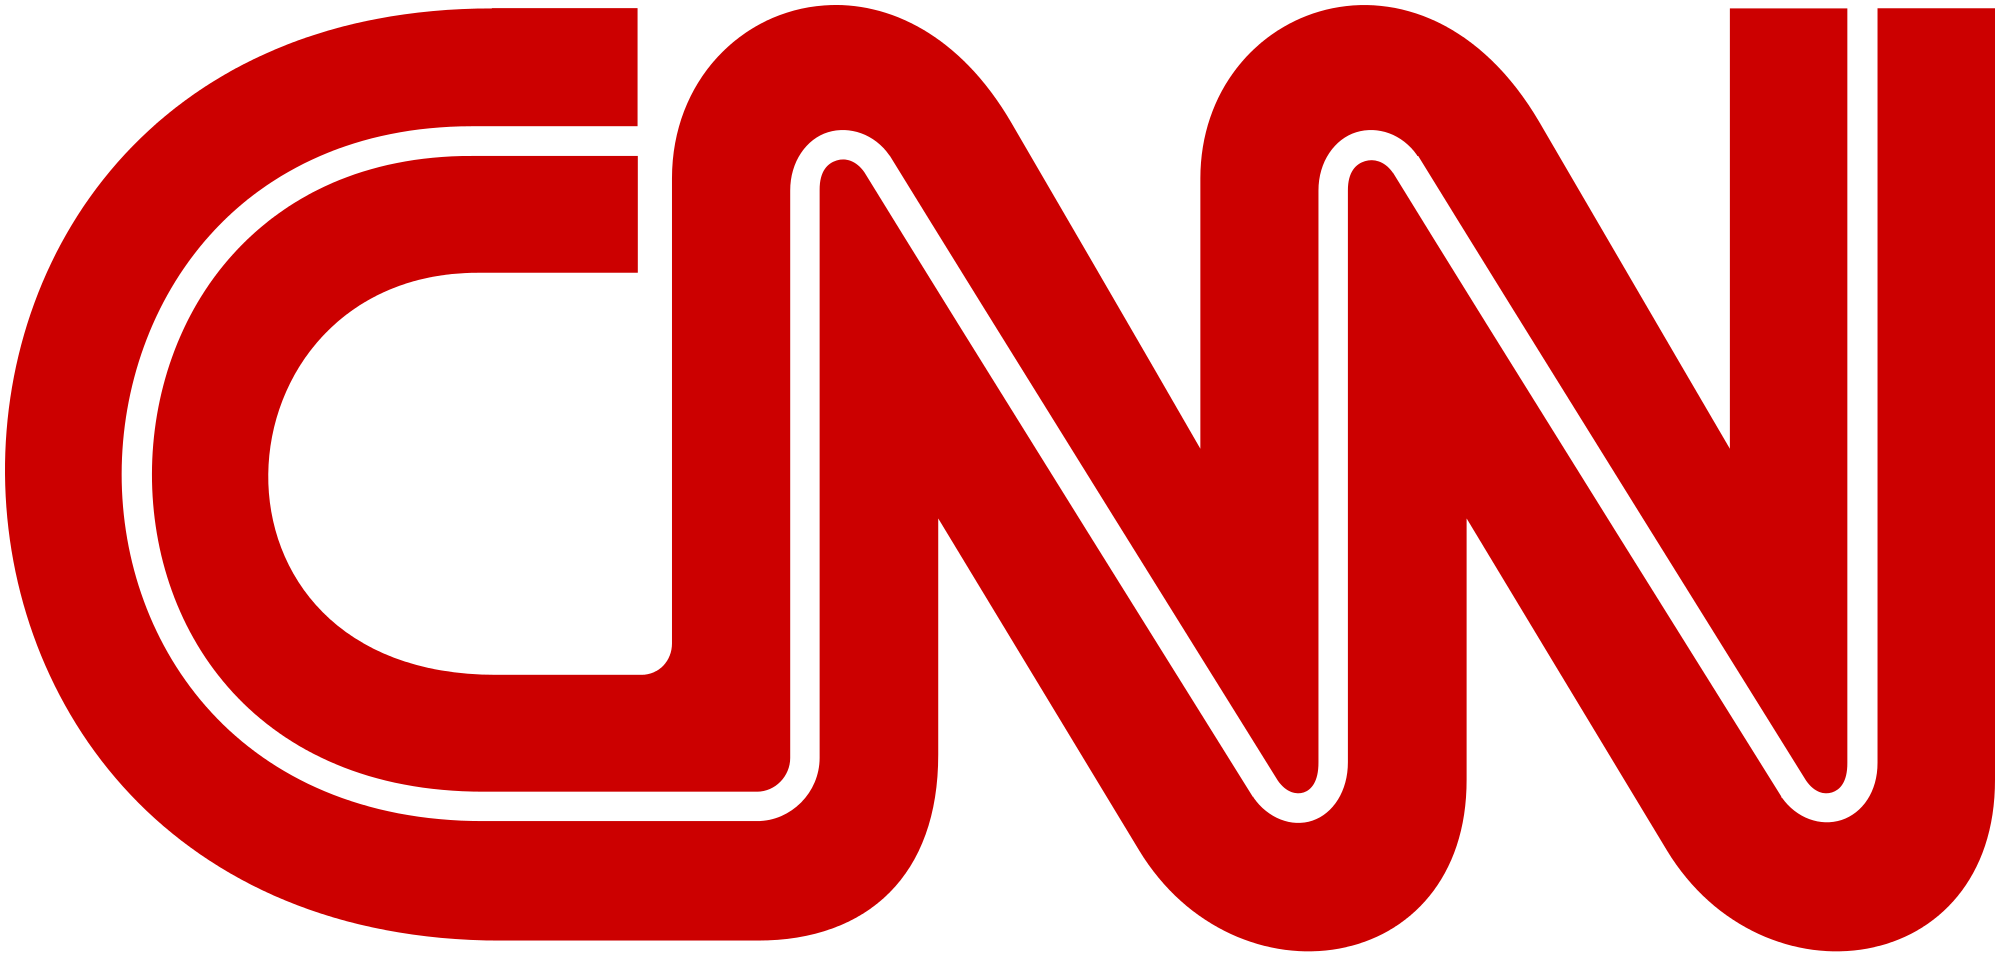 Cnn logo png. Transparent stickpng